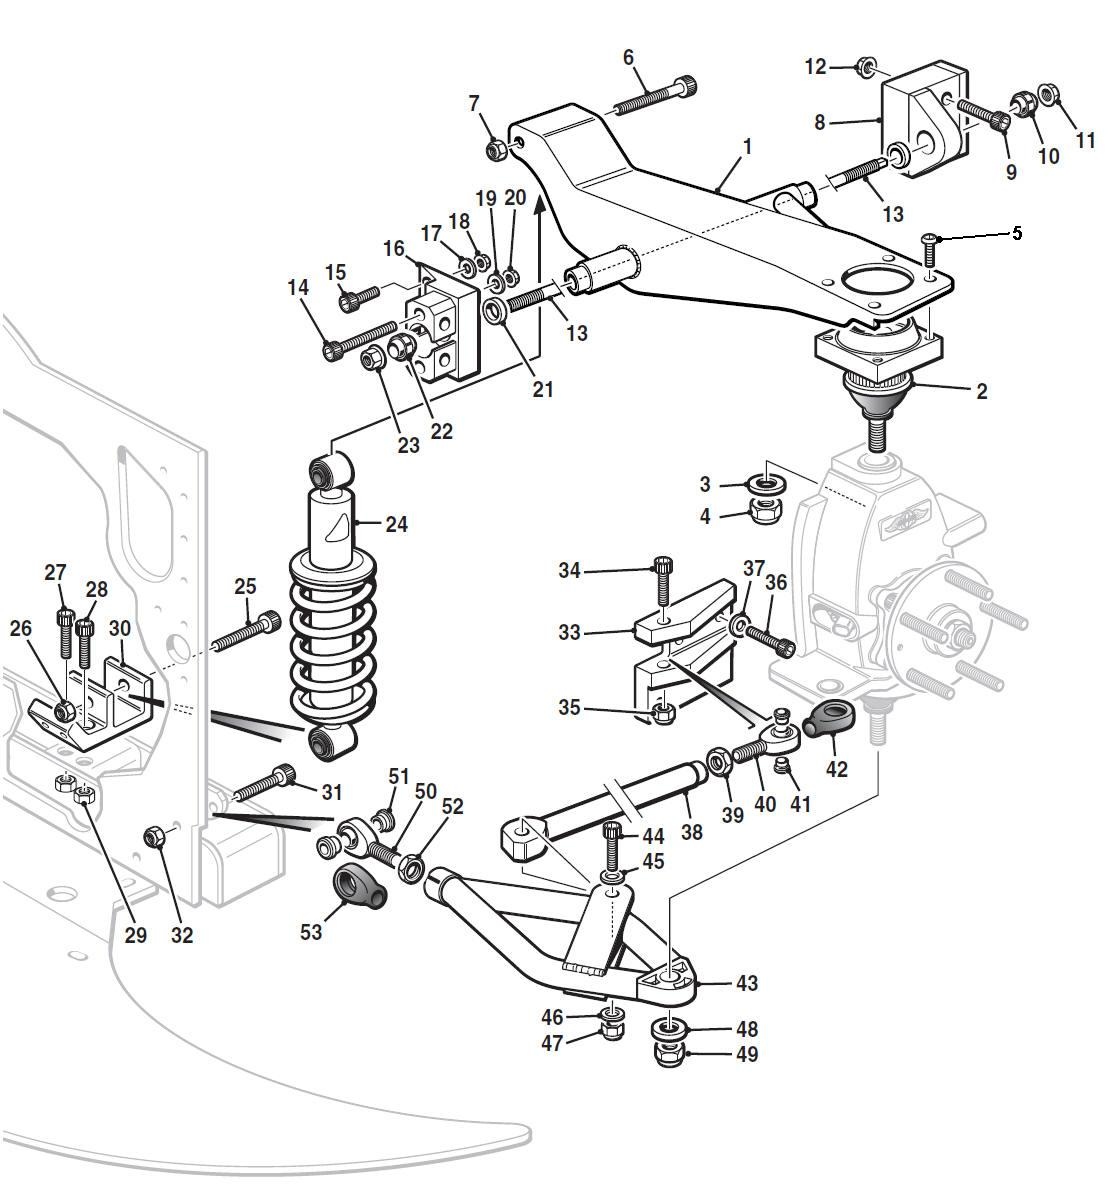 hight resolution of front suspension hover over labels to view part numbers